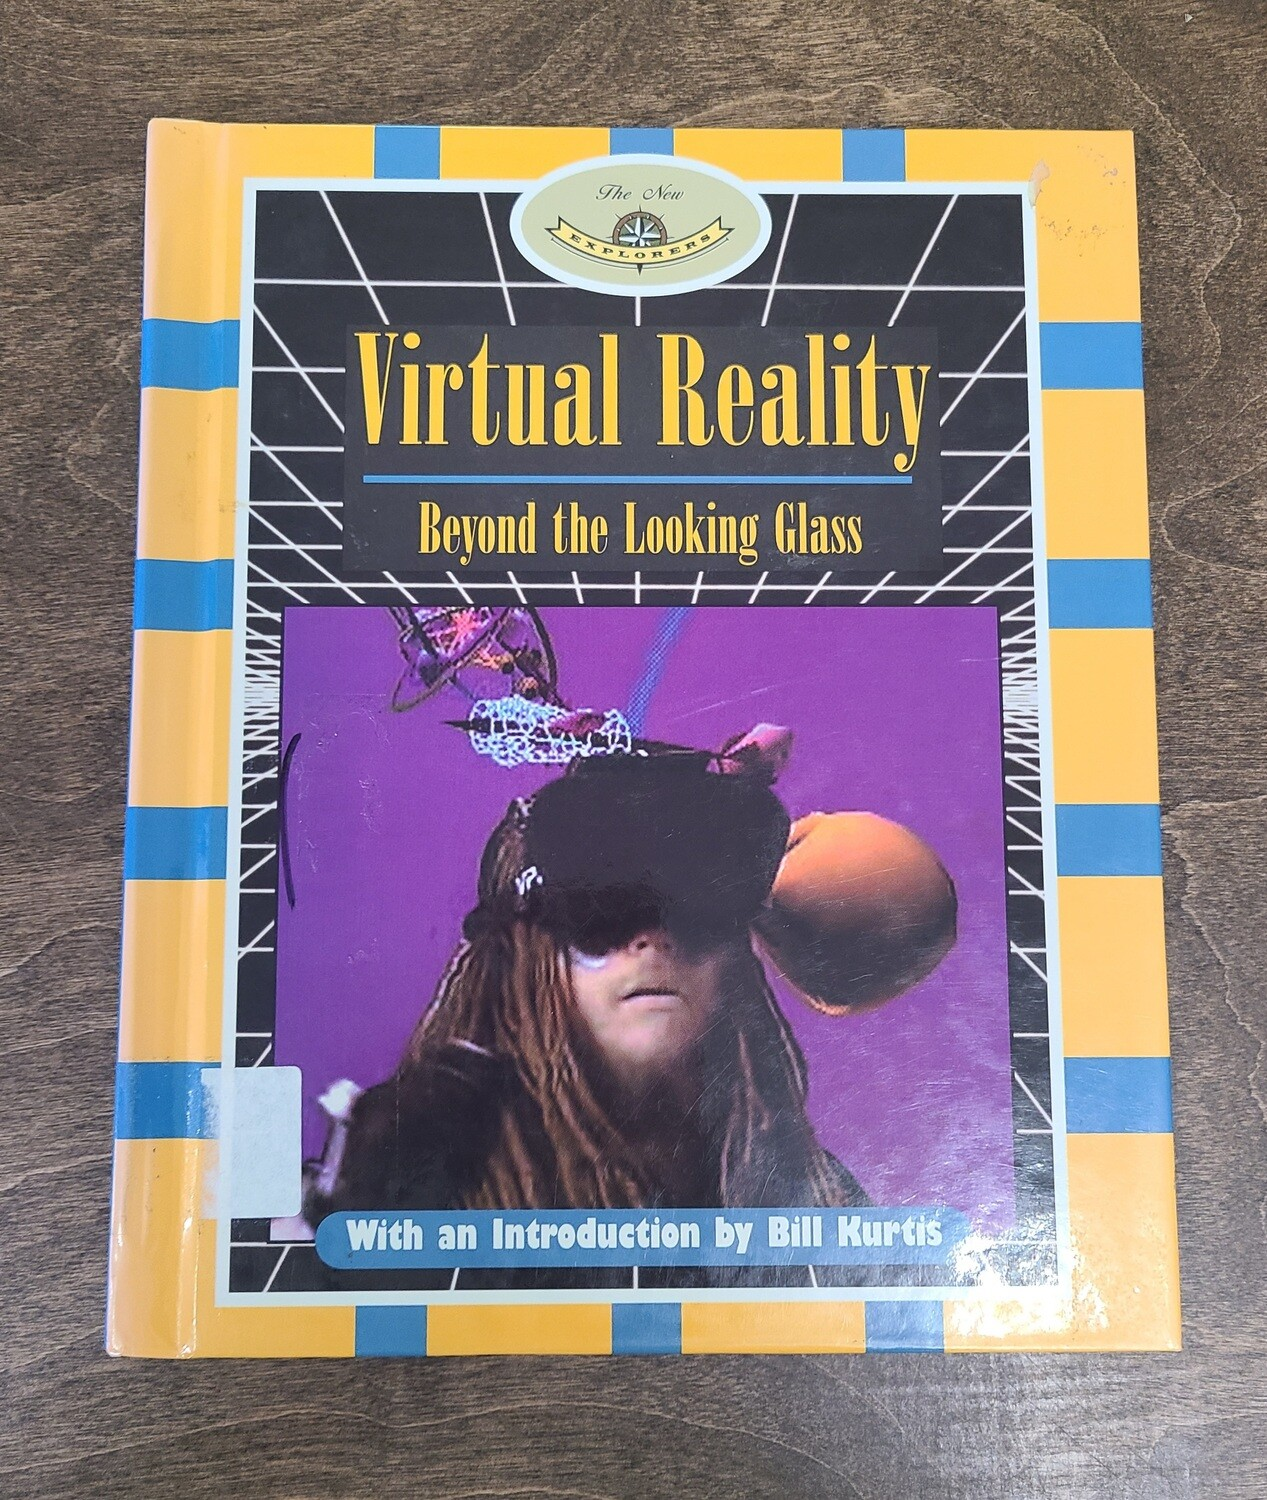 Virtual Reality: Beyond the Looking Glass by Elaine Pascoe